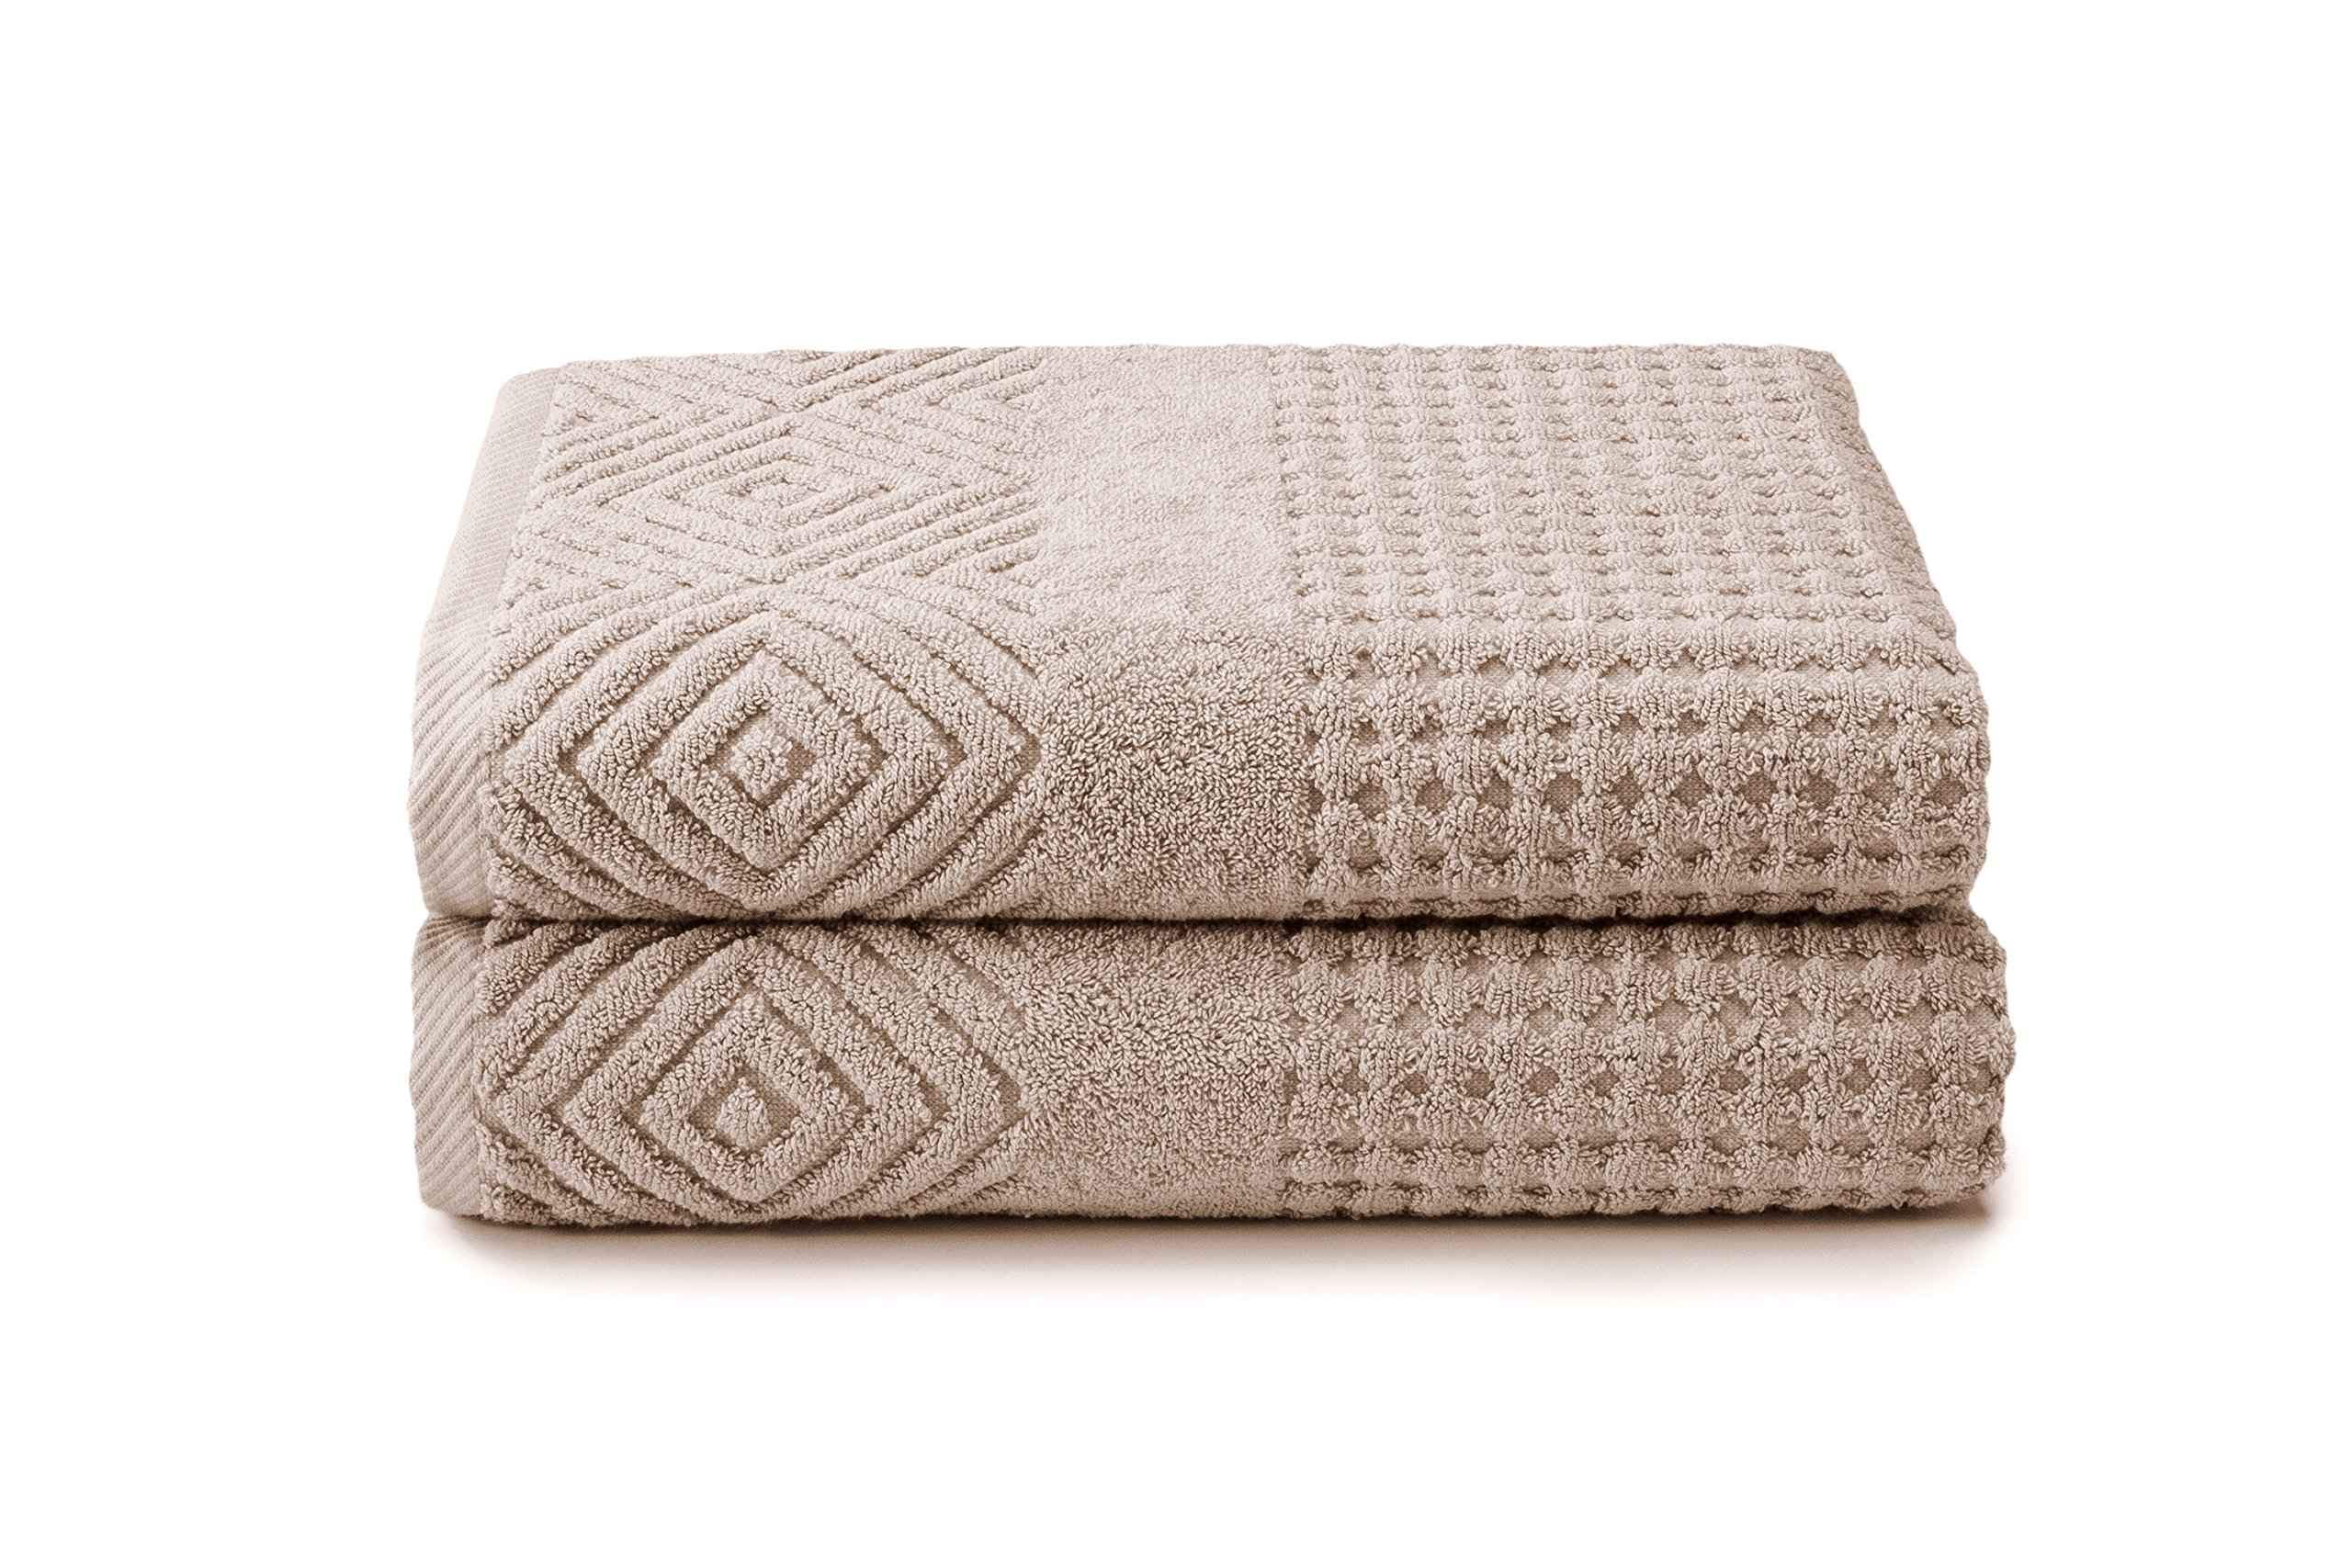 100% Organic Cotton 2 Pack Bath Towels - Best Home Gift by Texere (Aloe, 2-Pack, Oxford Tan) Elegant Comfortable Bath Towels for Home TX-HC223-001-OXTN-R-2